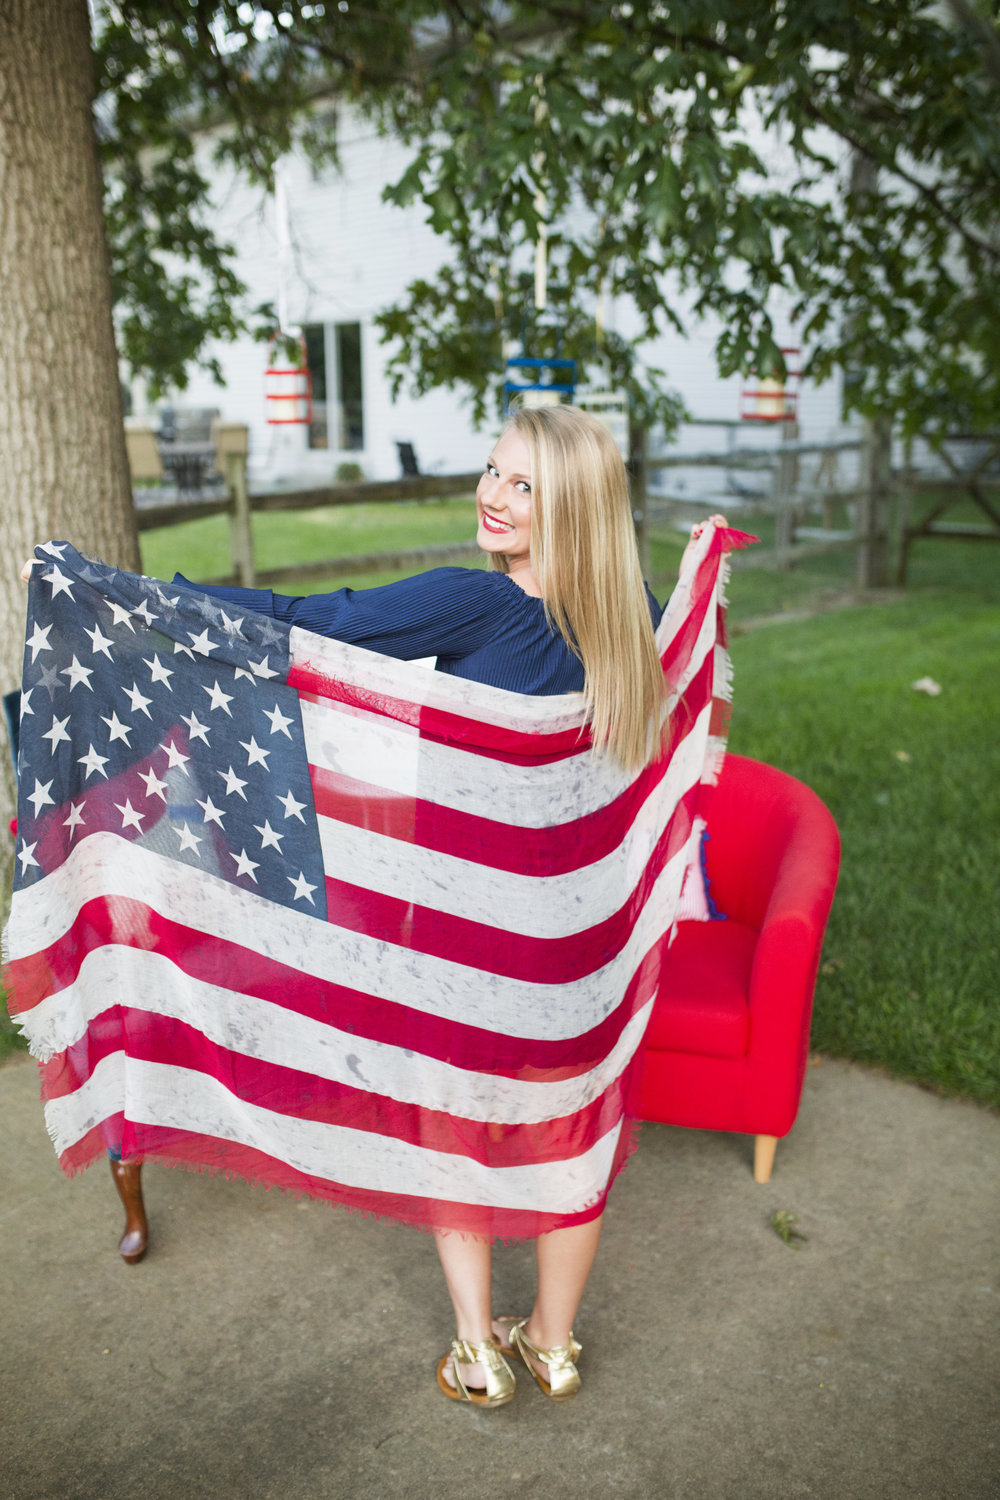 Patriotic Party Inspiration by Event Prep with Haley Elizabeth Studios-0079 copy.jpg